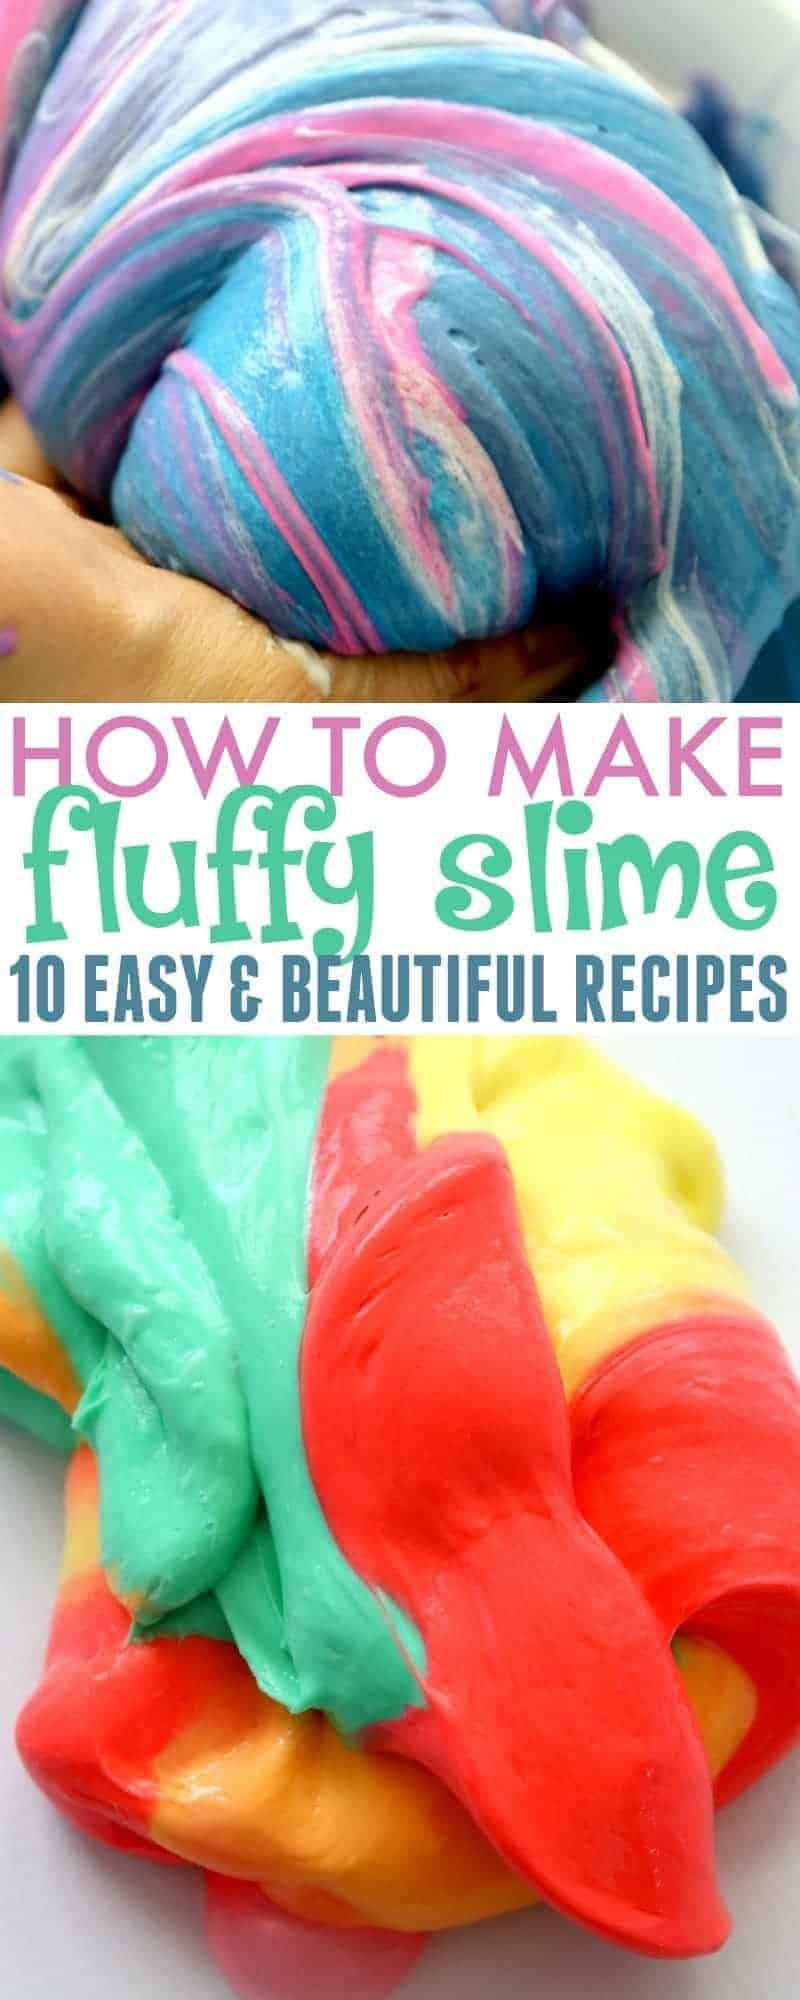 Learn how to make fluffy slime with these 10 easy and beautiful borax-free recipes. Great for crafts, parties, educational activities and more!